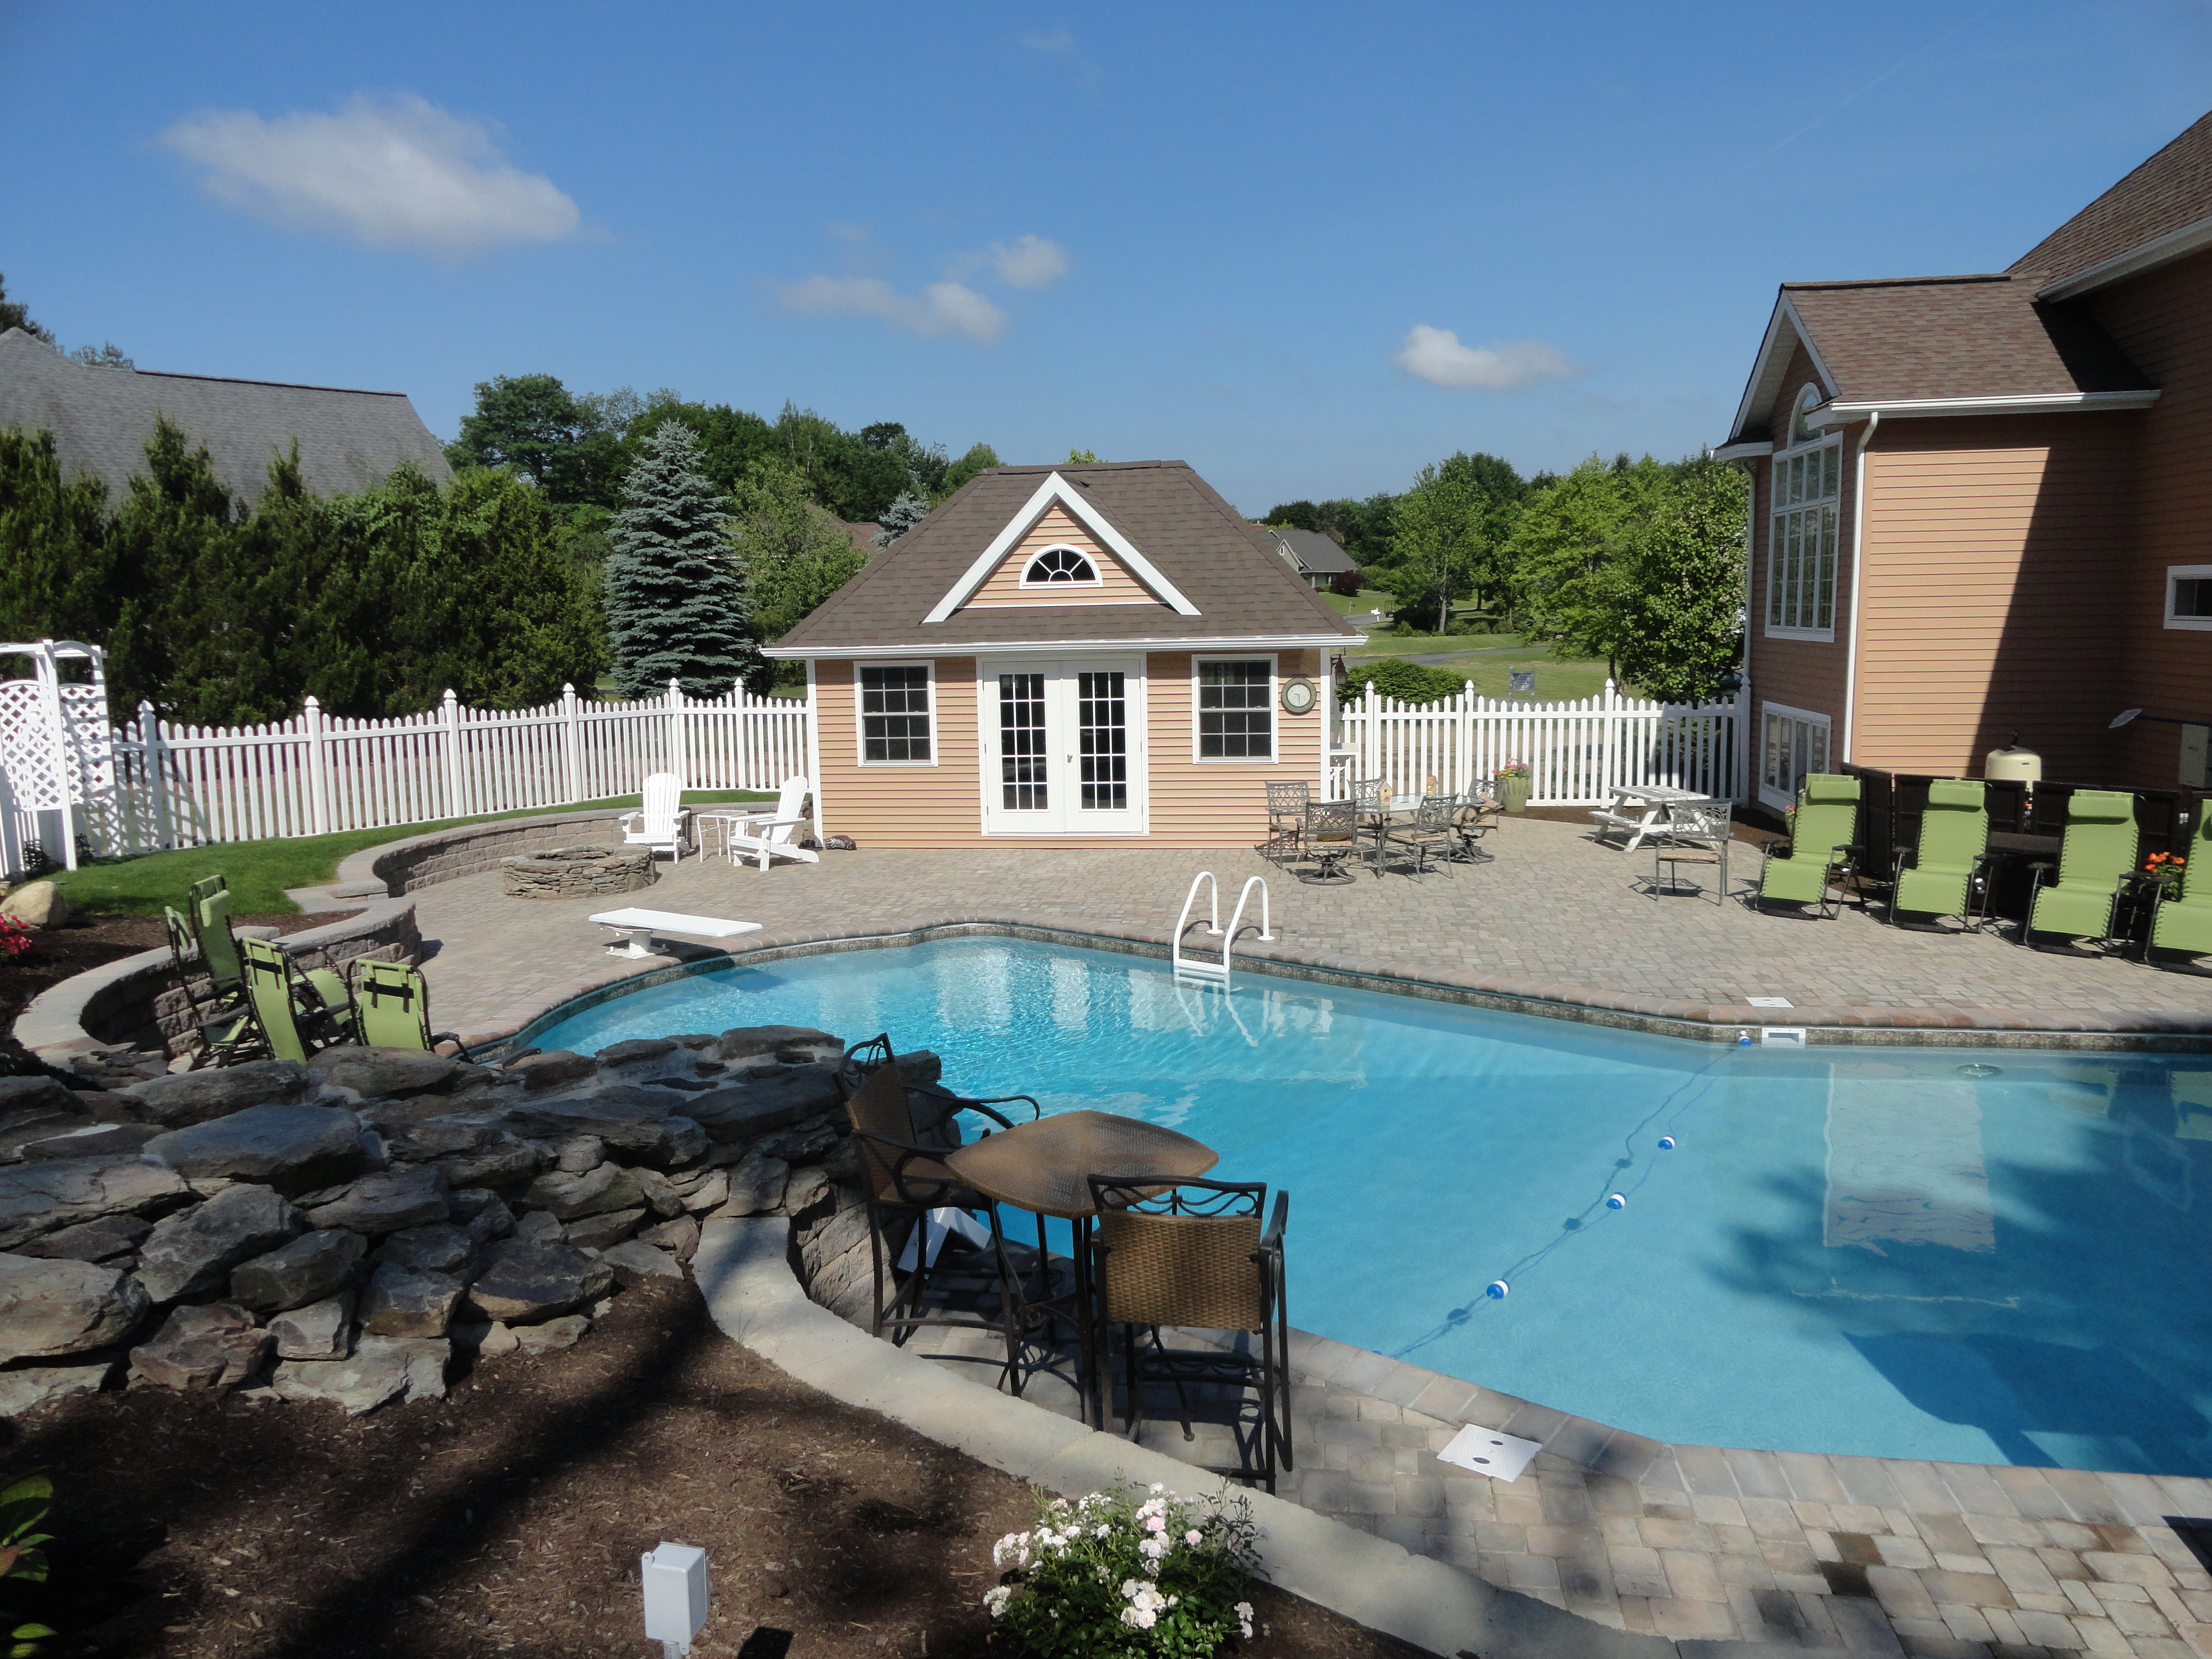 Outdoor Living | Patriot Construction of Upstate New York ... on Patriot Outdoor Living id=22674